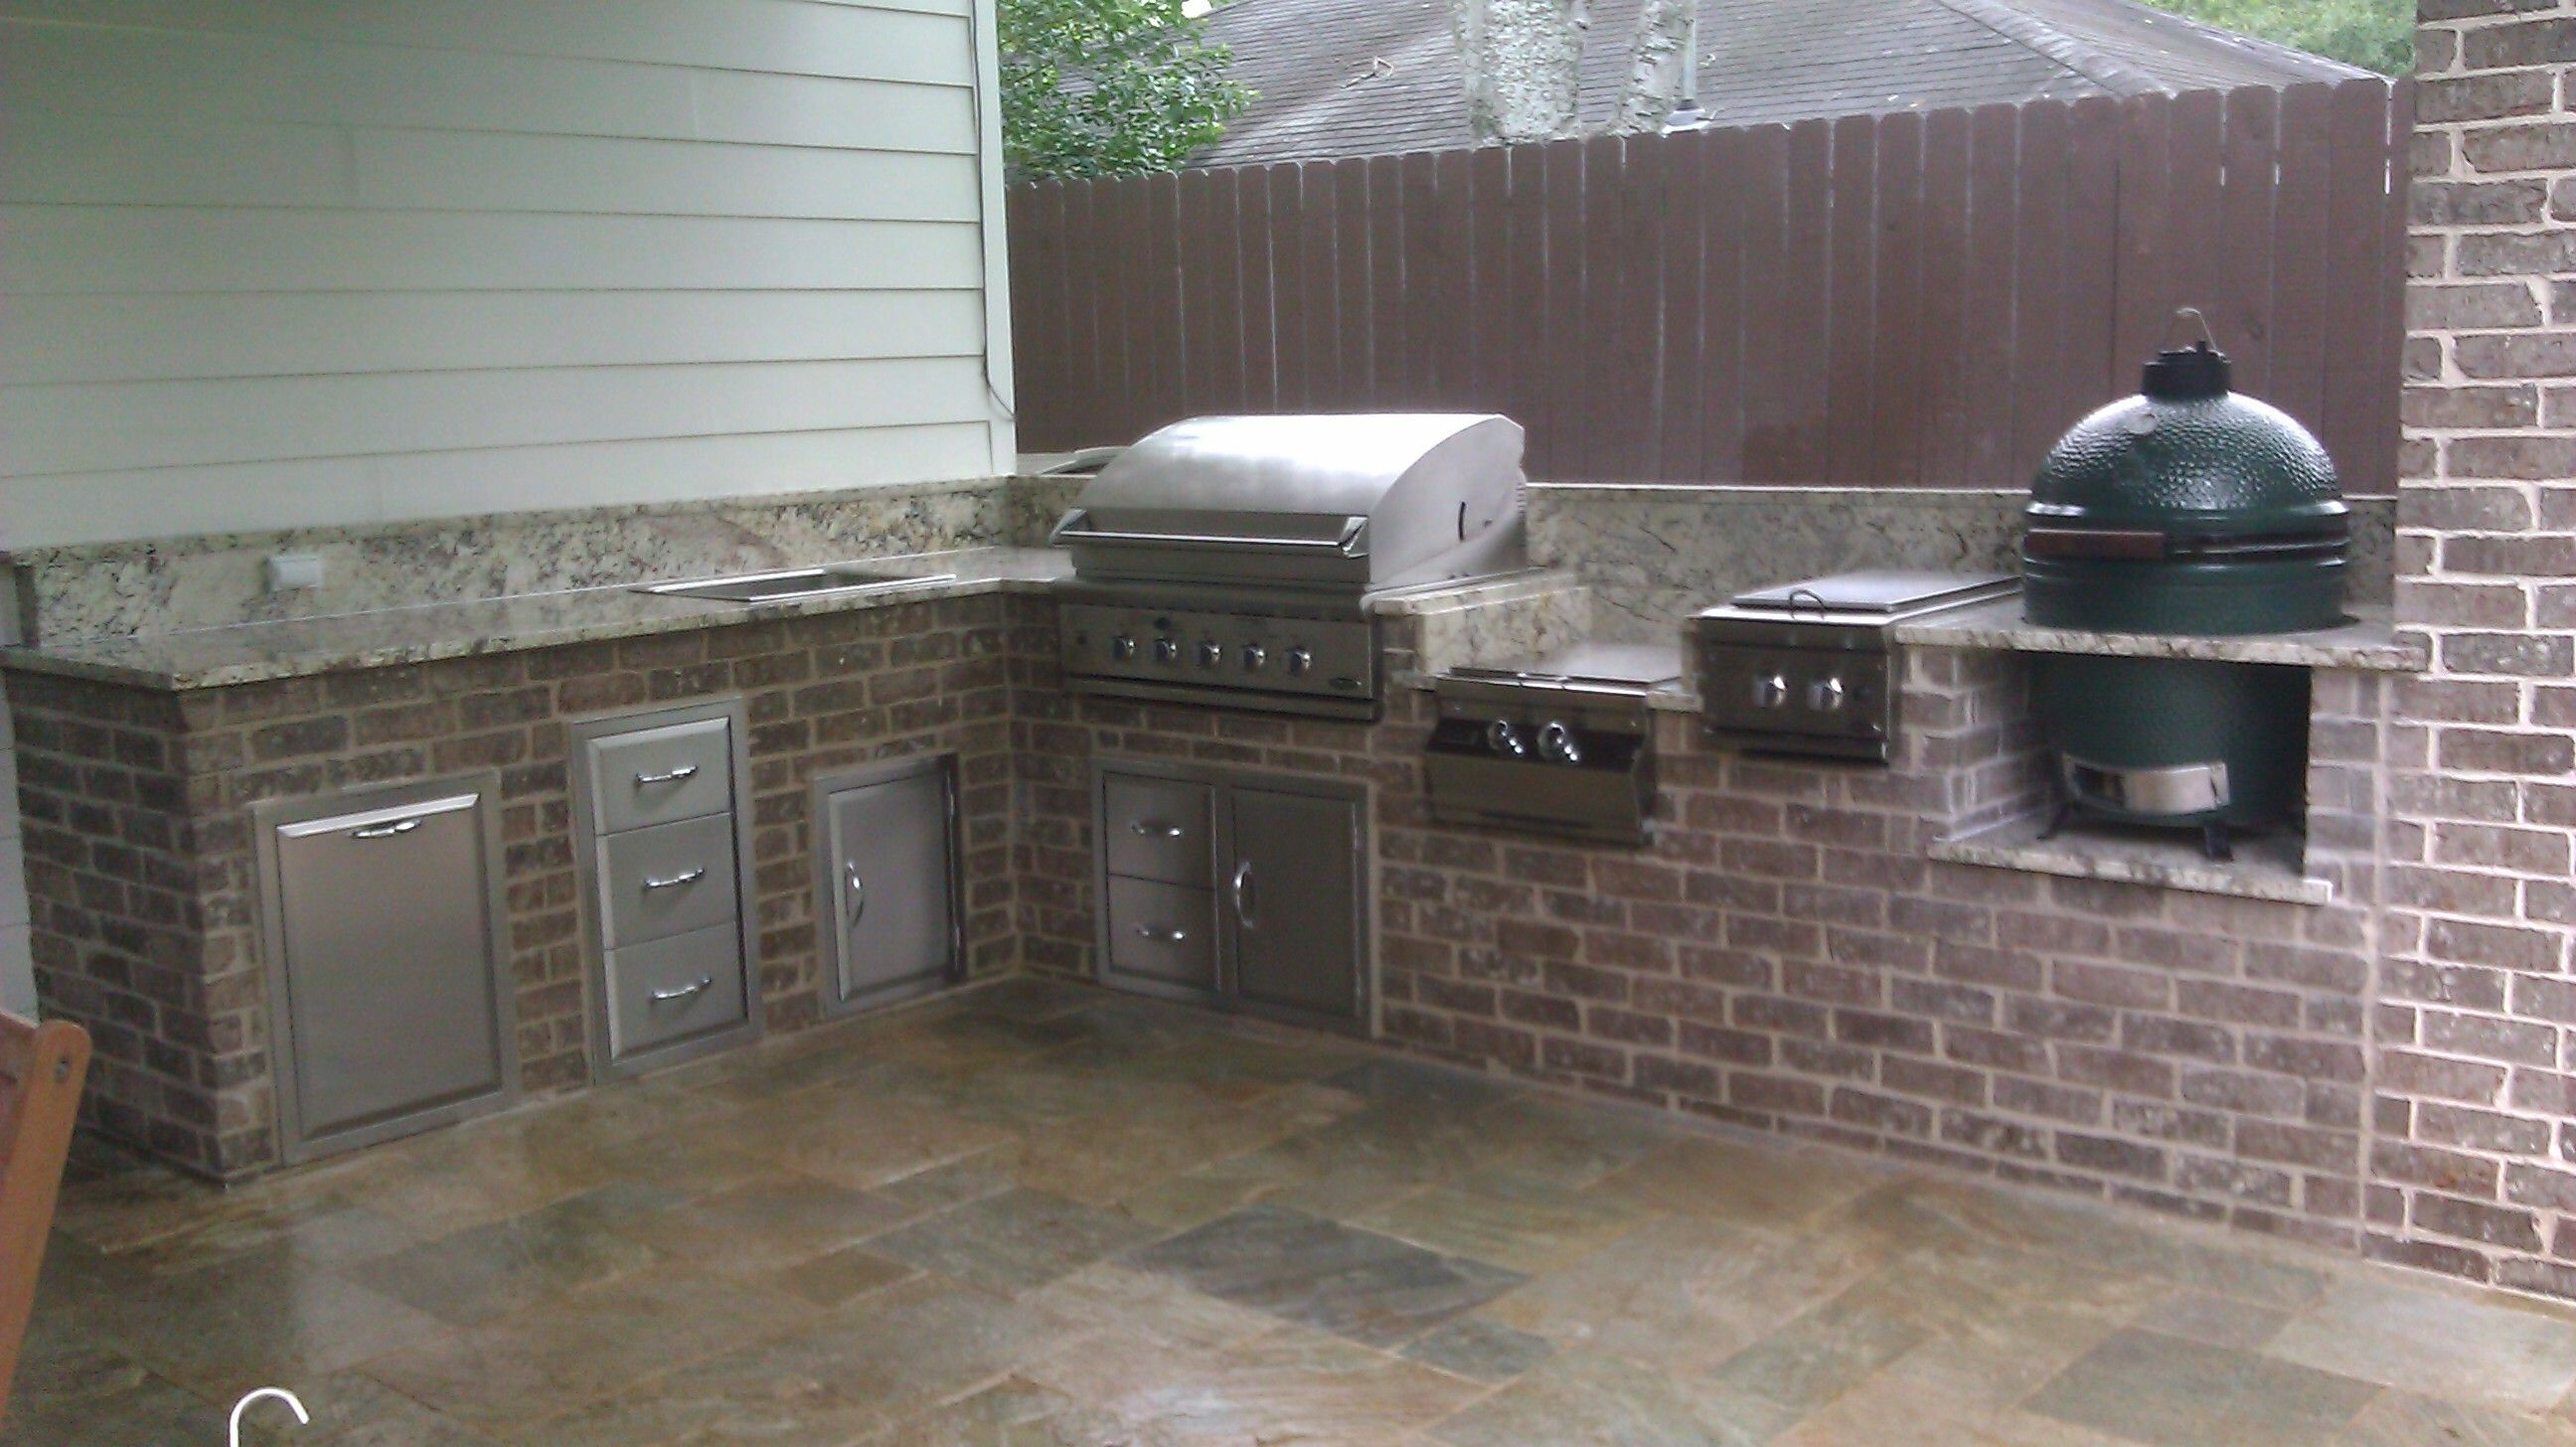 Diy Outdoor Kitchen With Green Egg And Grill   Yahoo Image Search Results